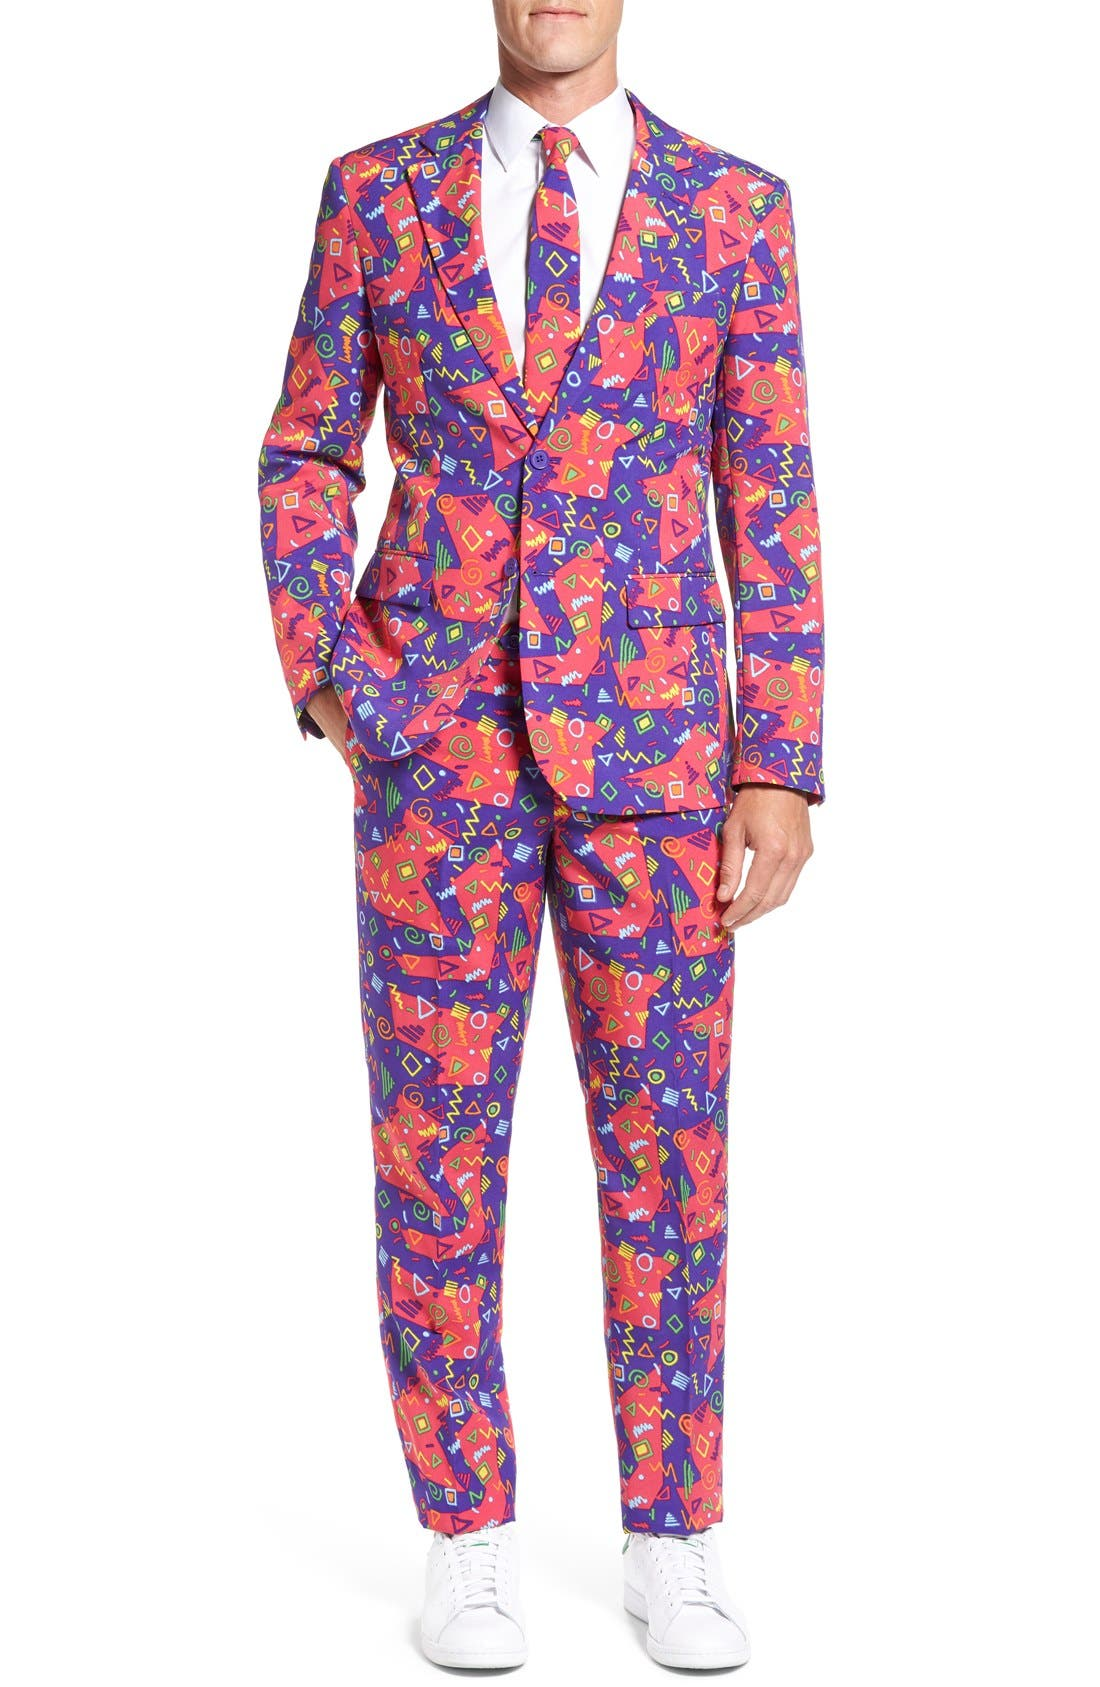 OppoSuits 'The Fresh Prince' Trim Fit Two-Piece Suit with Tie